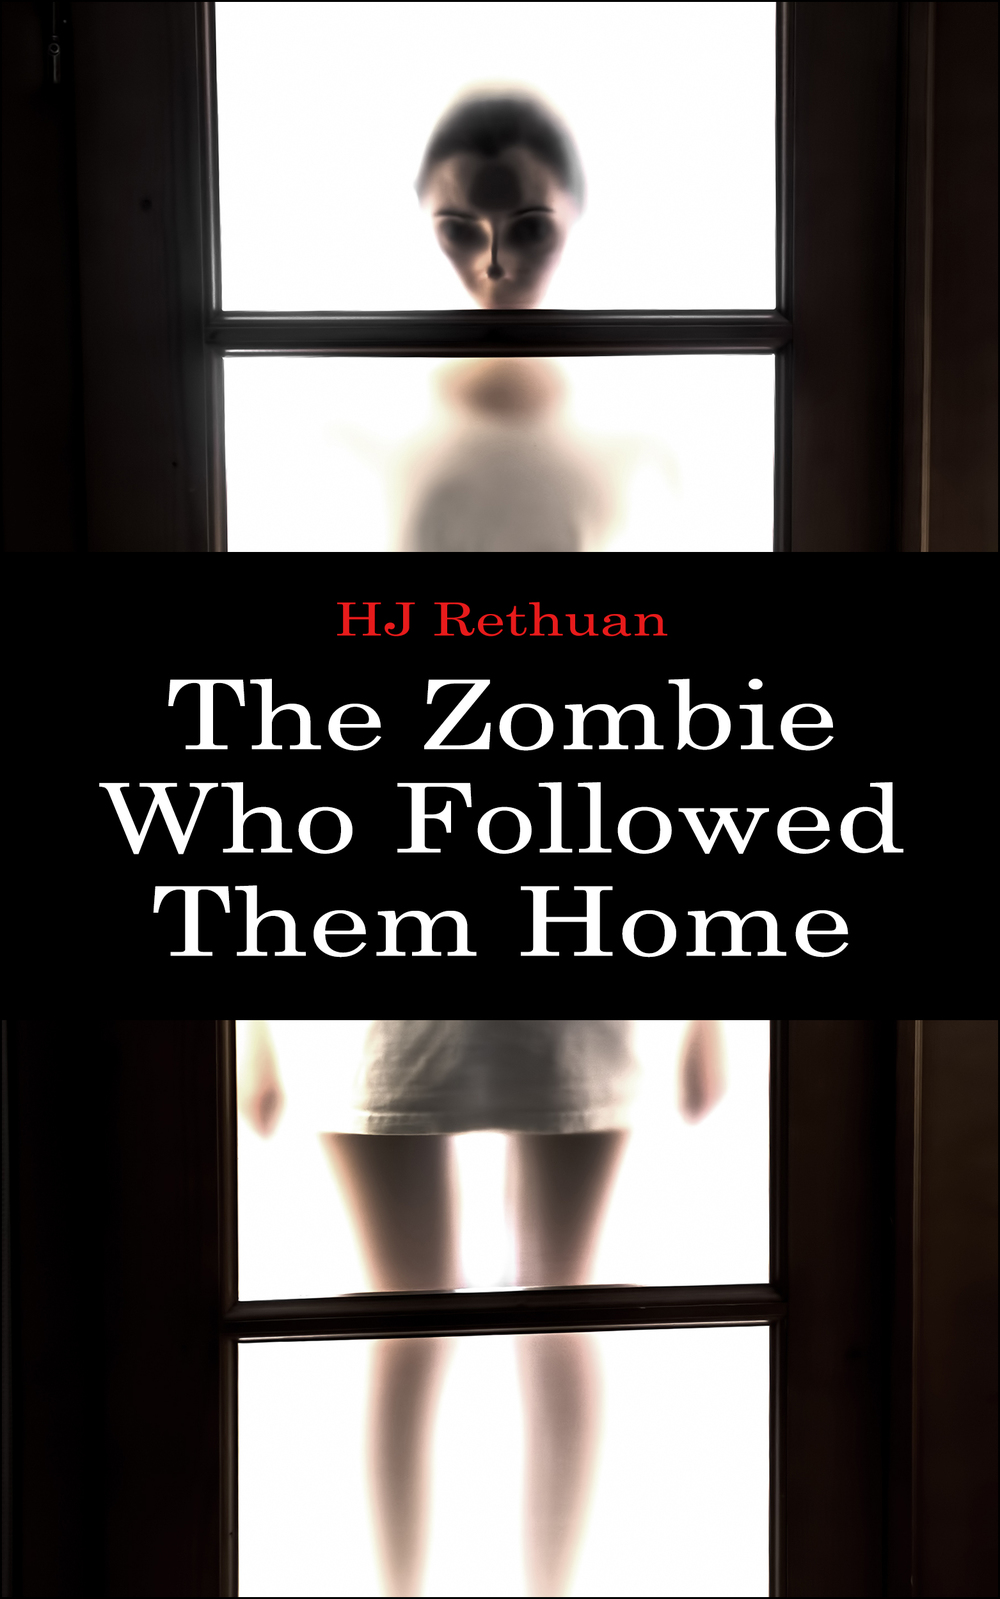 The Zombie Who Followed Them Home